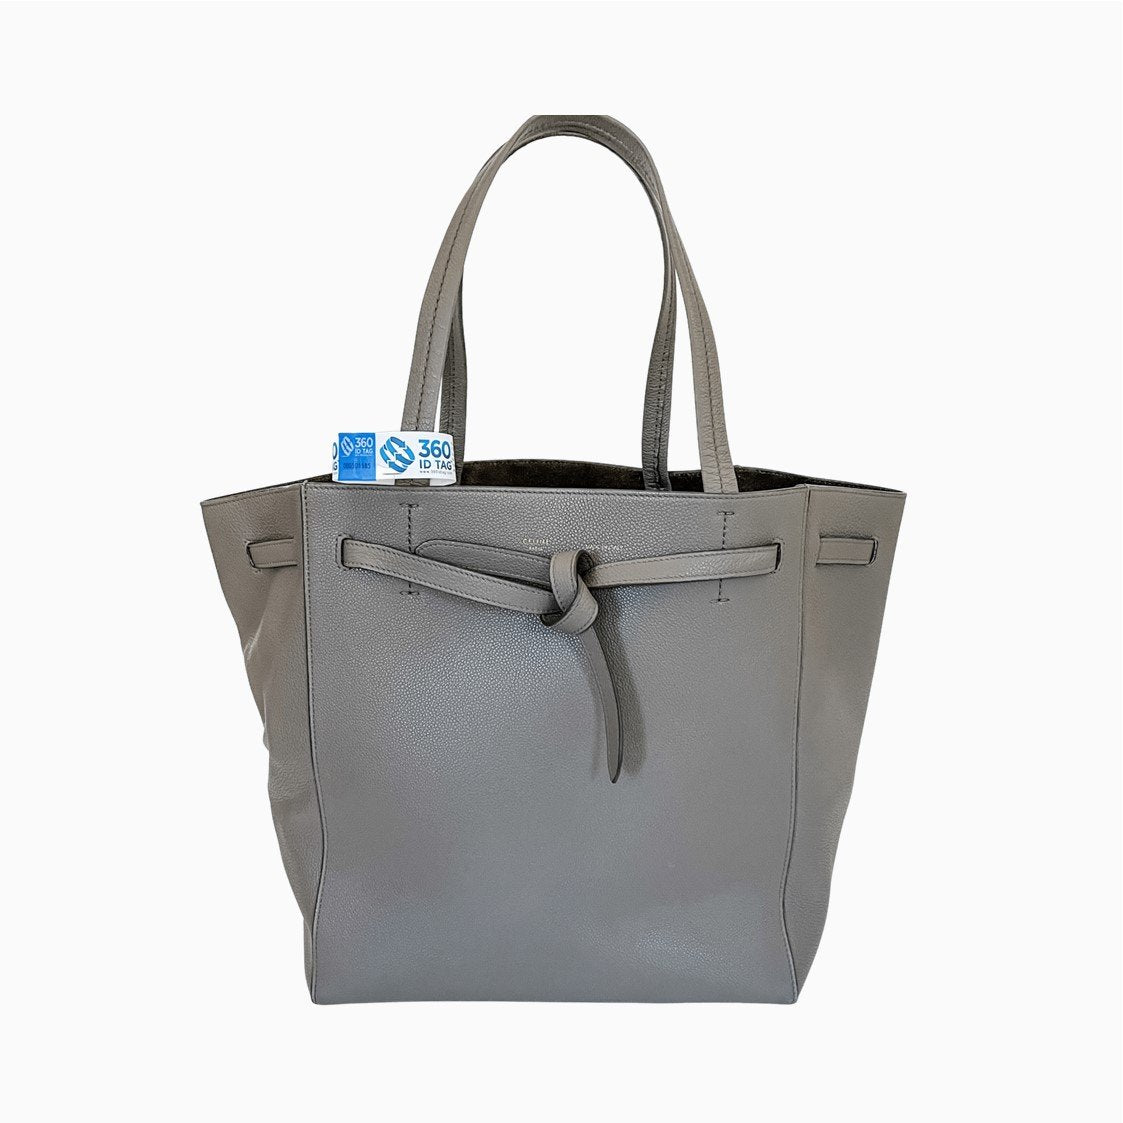 Handbag with e-commerce return tag to prevent return fraud like wardrobing, wear and return, counterfeit product switches. 360 ID Tag